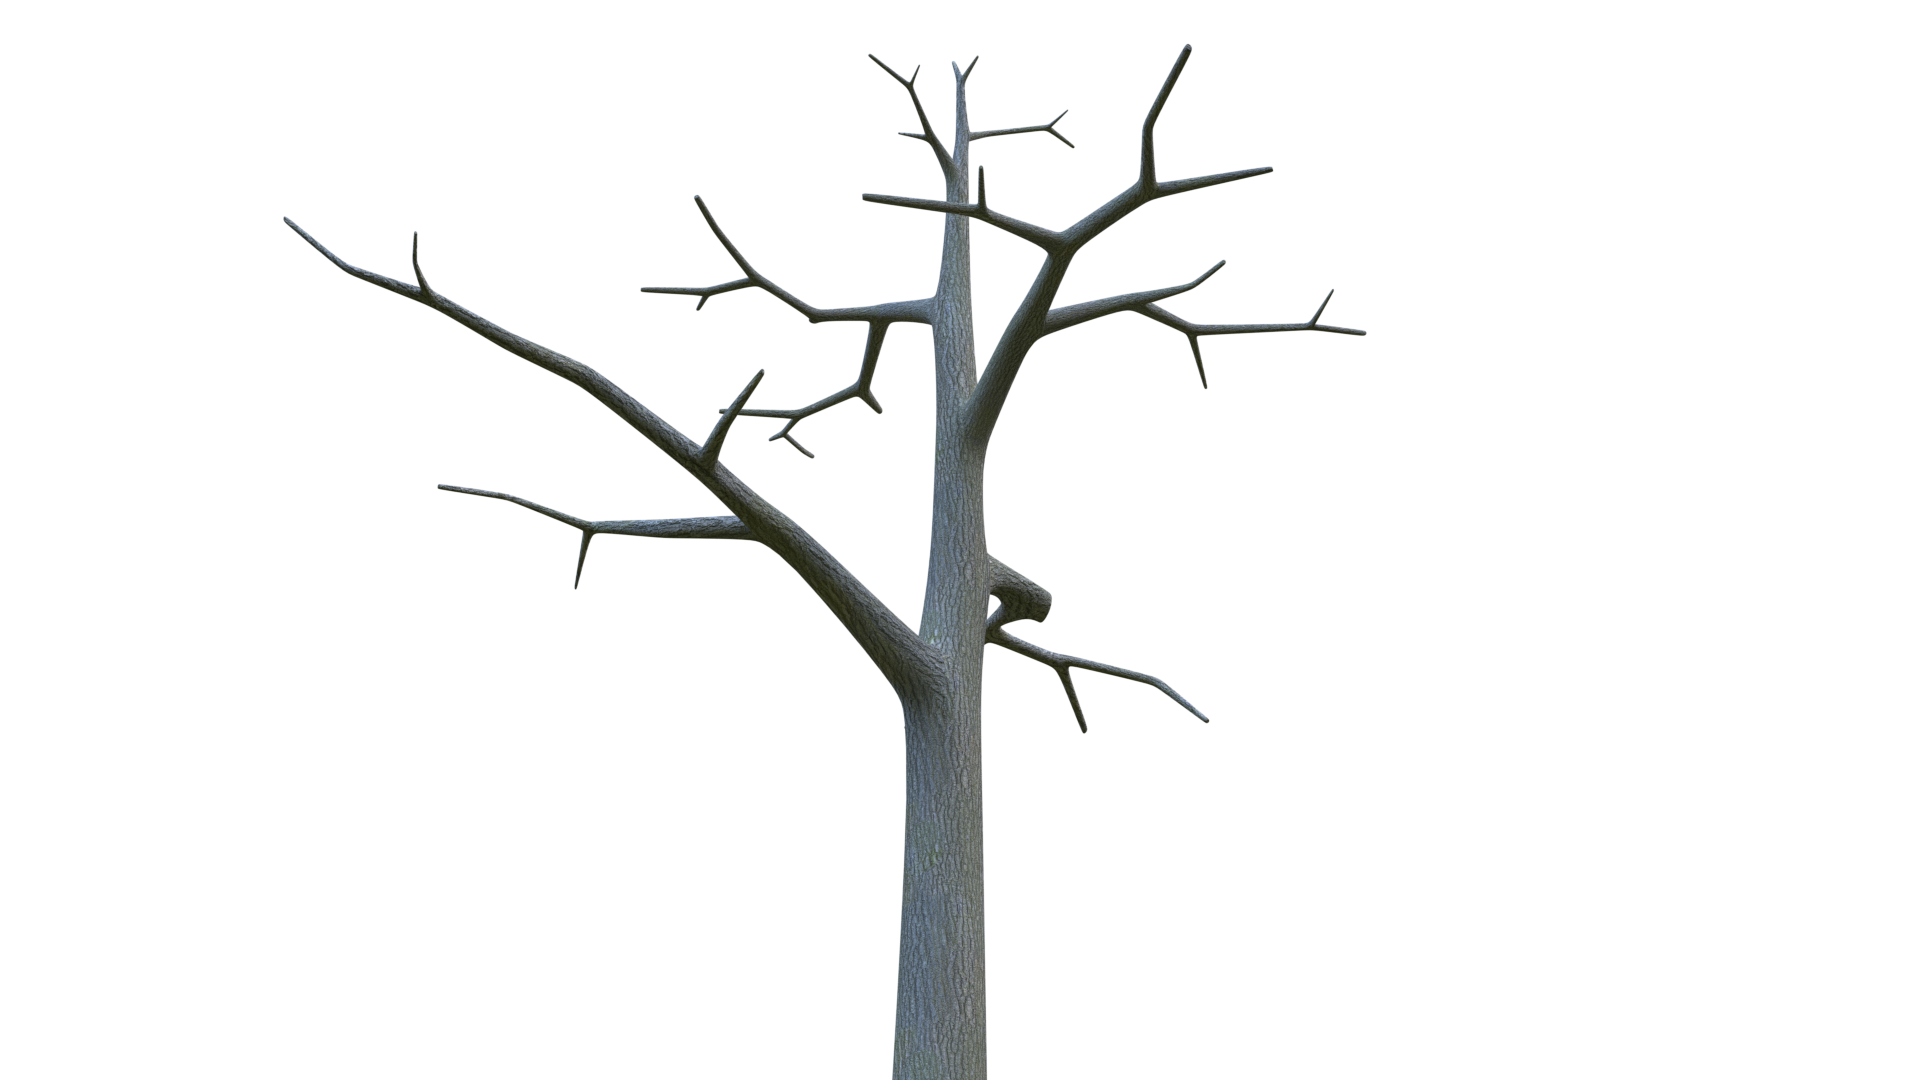 Free 3D Barren Tree CC0 3DS - Free 3D Models Under Public Domain